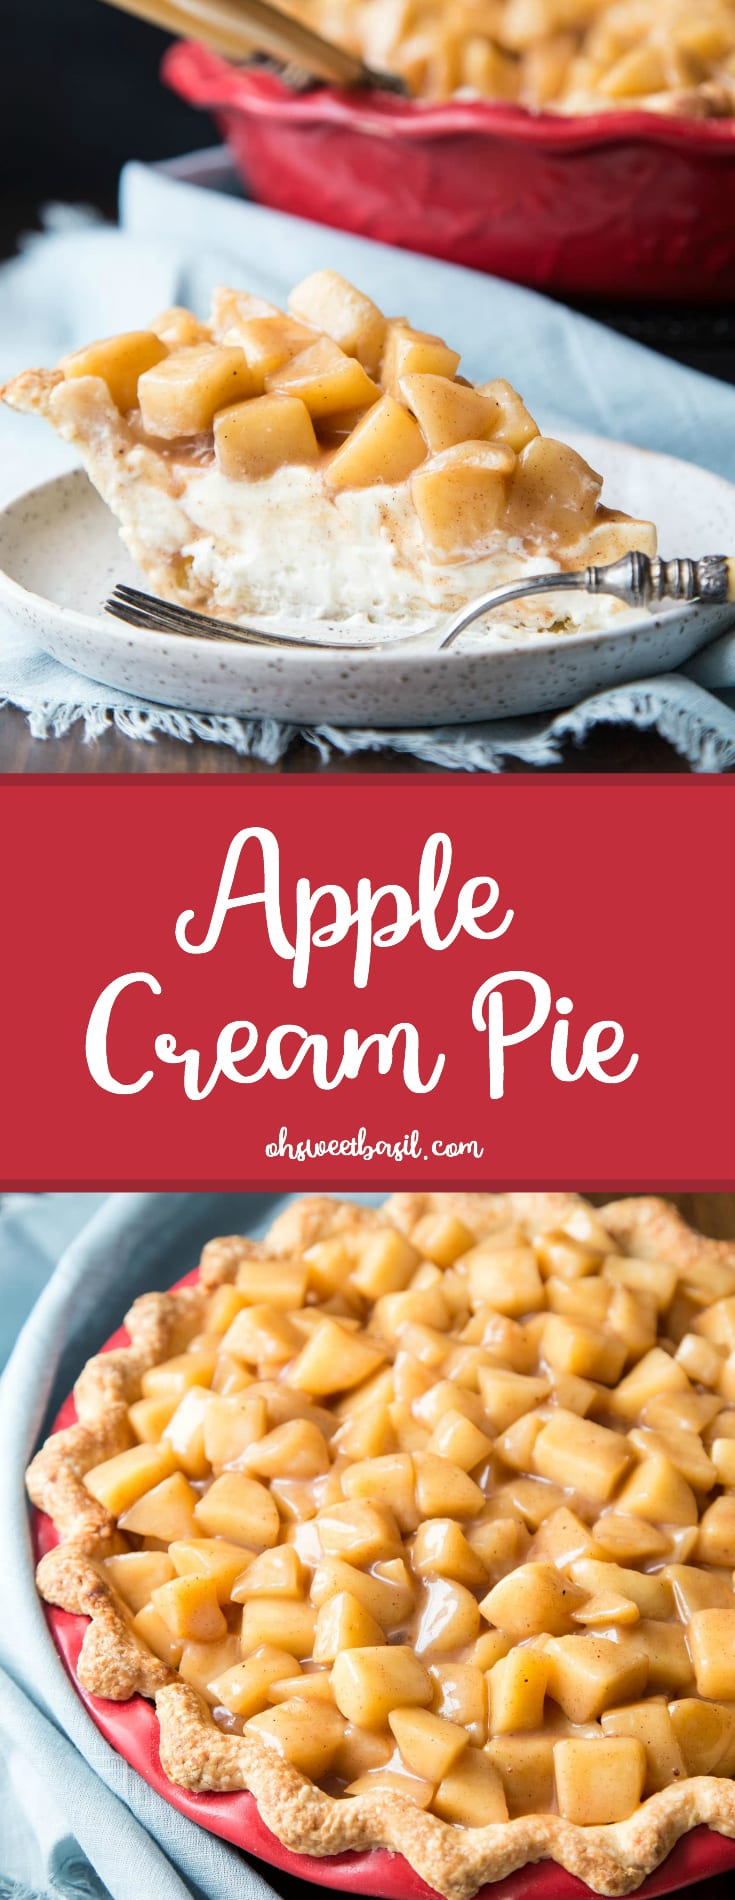 A slice of creamy apple pie with freshly cut apples on top